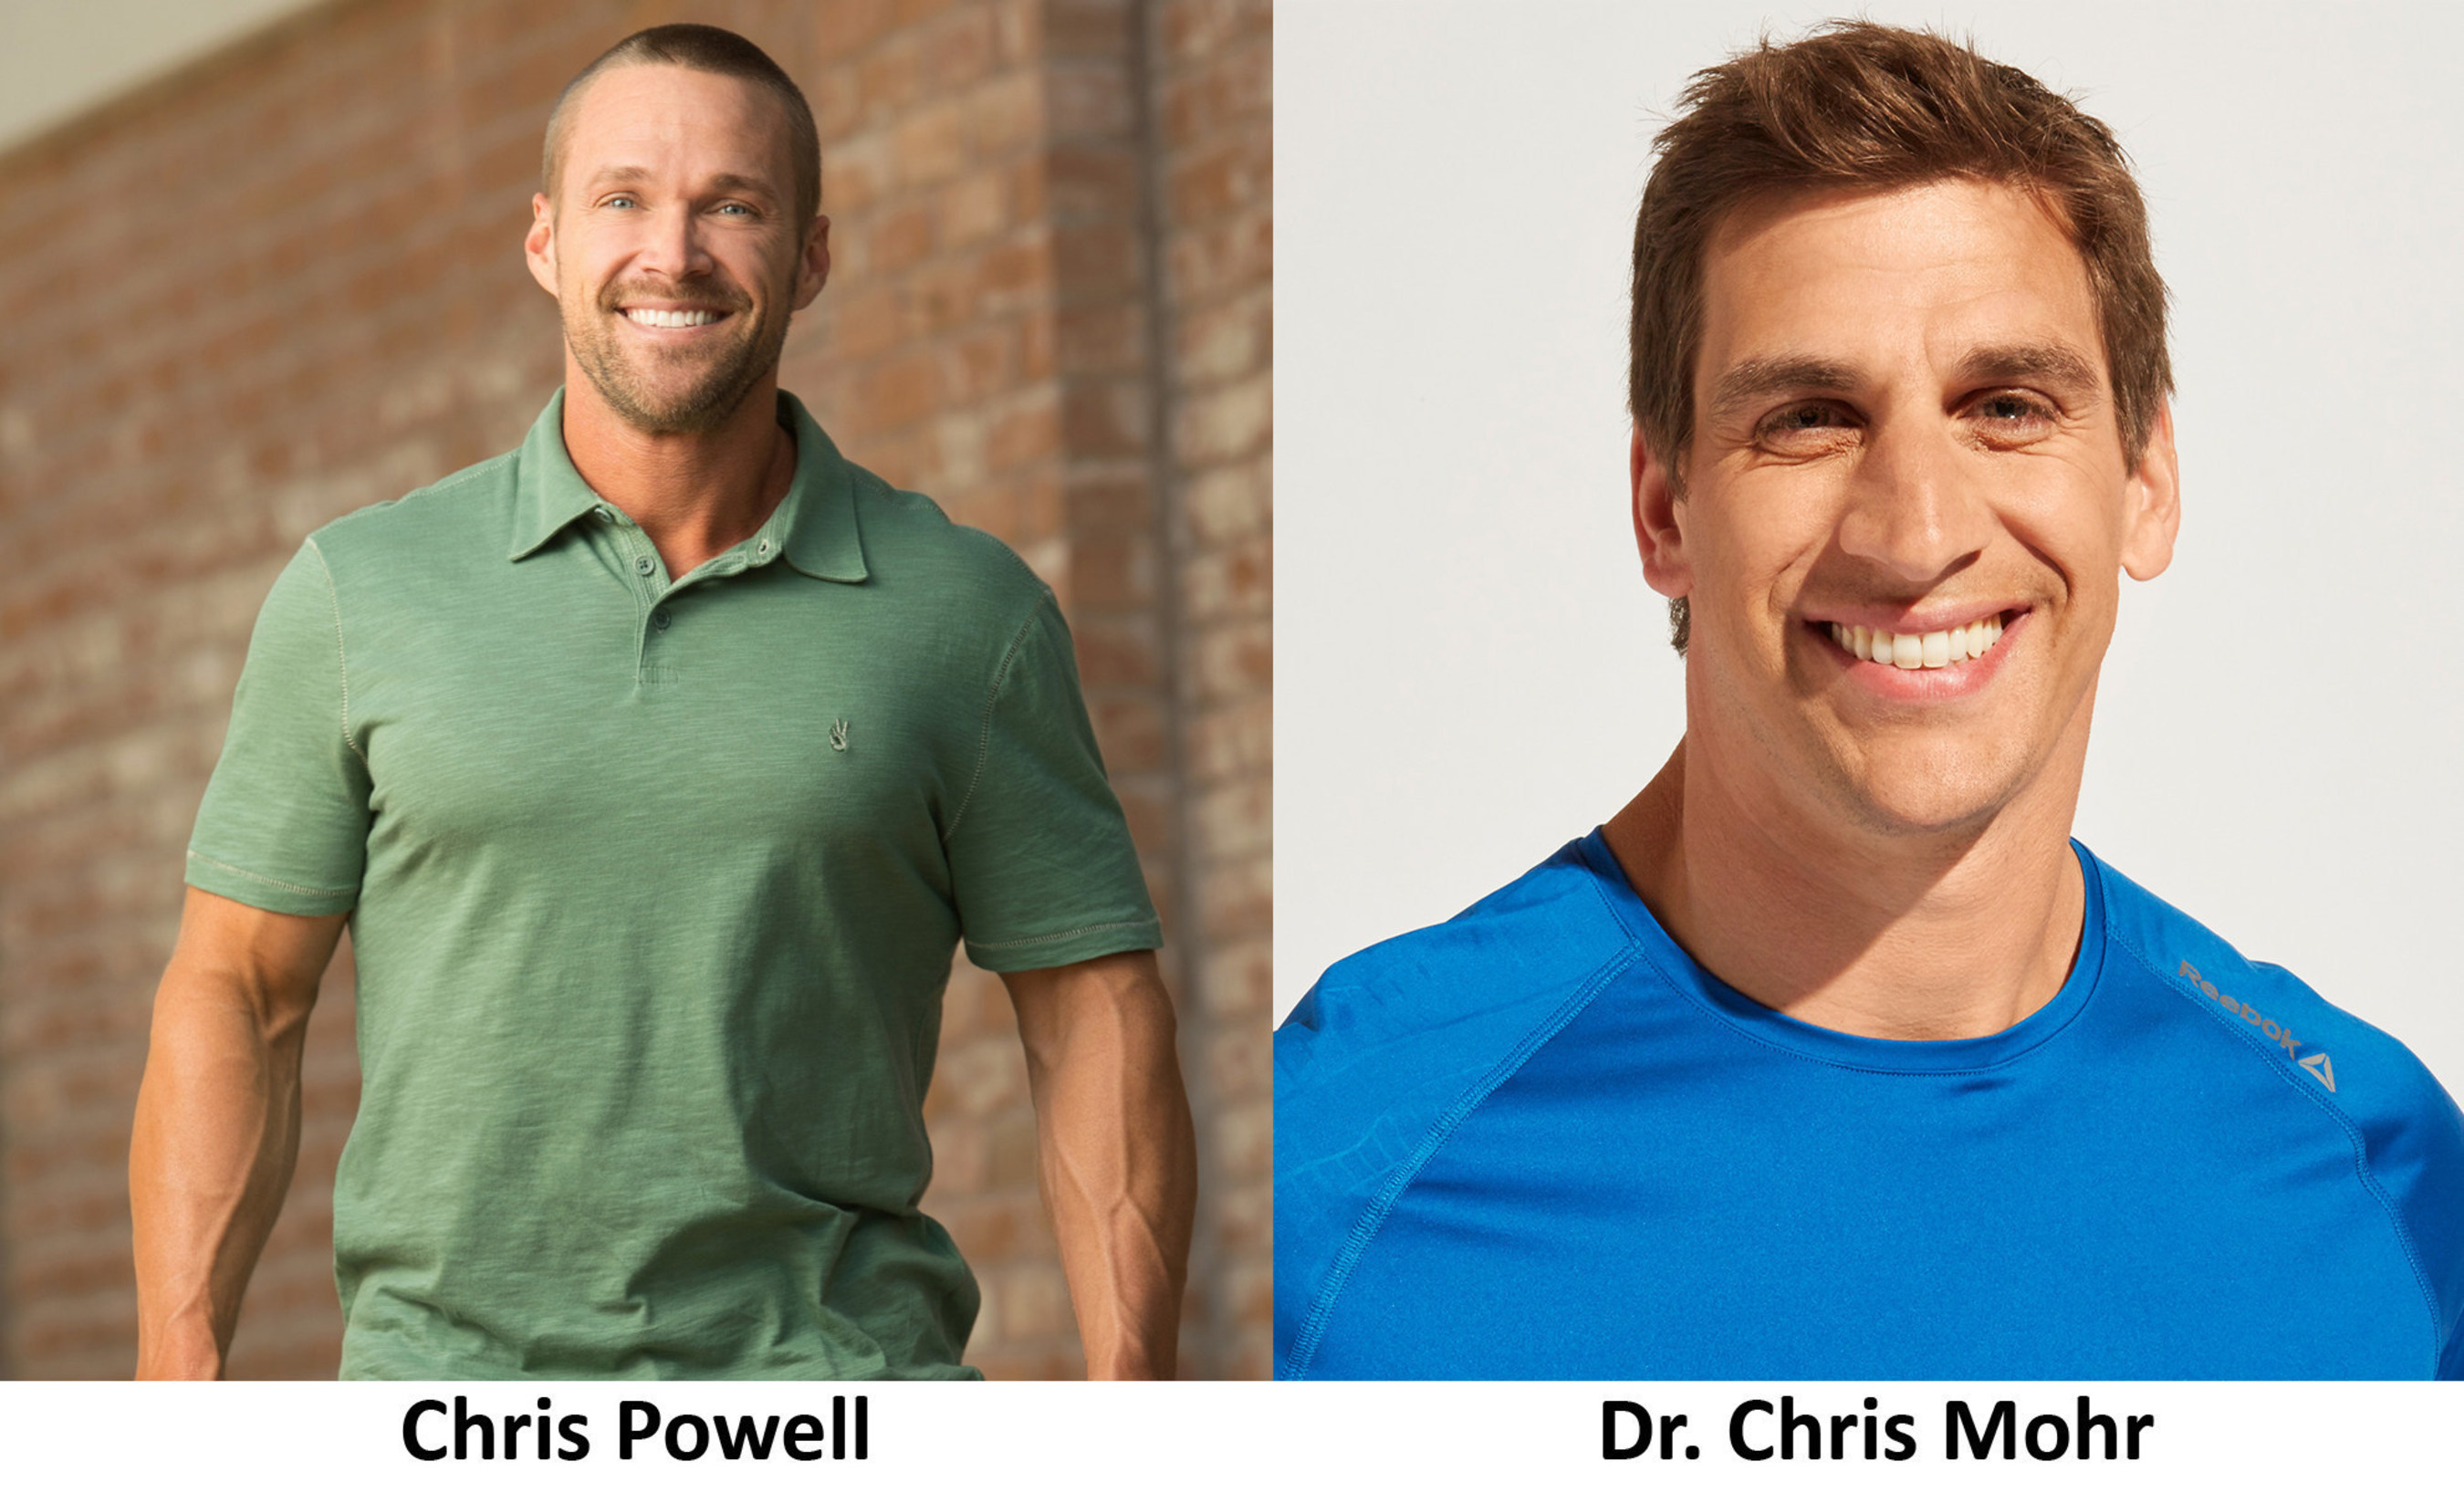 Chris Powell & Dr. Chris Mohr Team Up To Help Men Reach Six Pack Success with Almonds